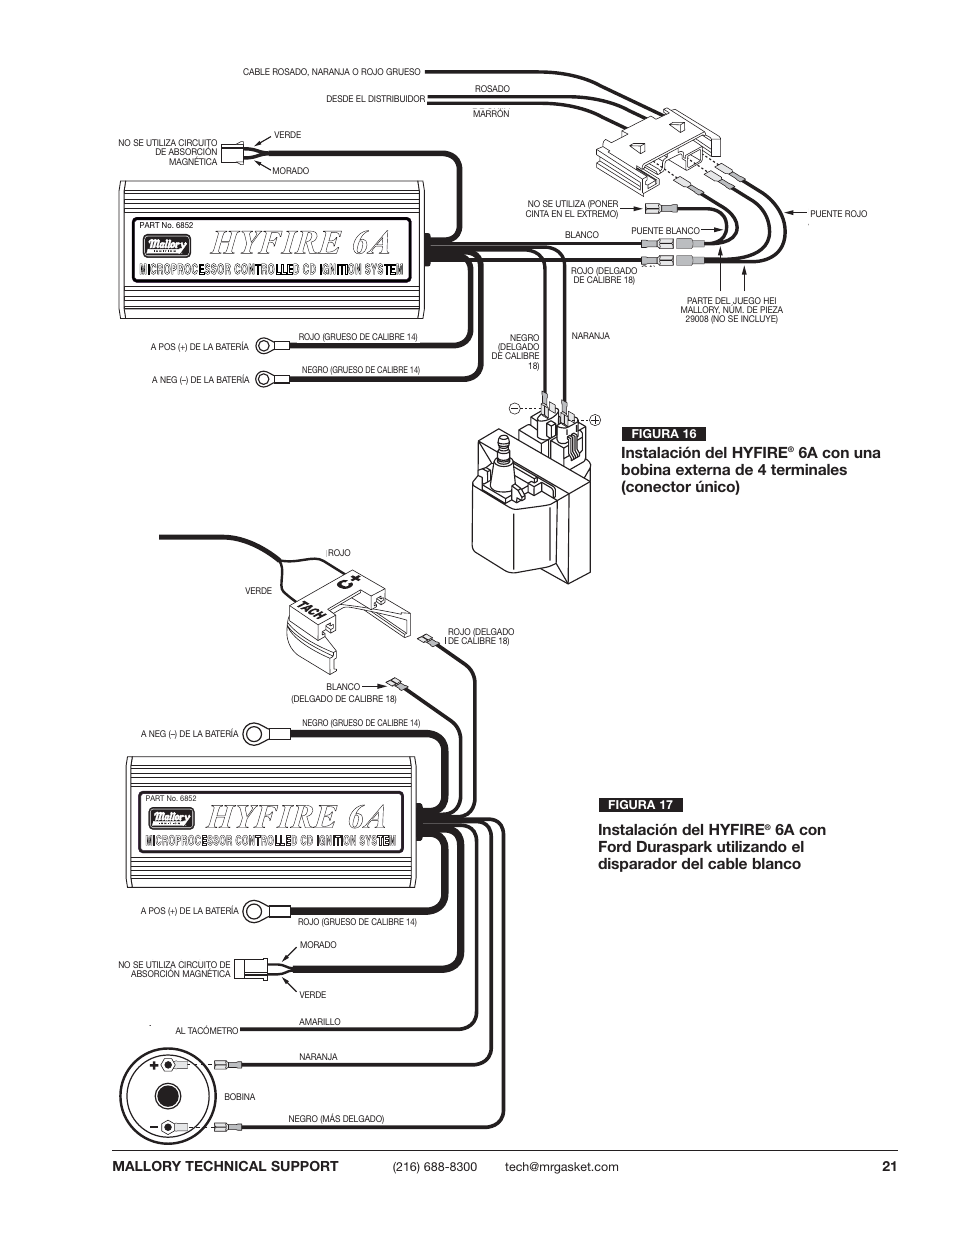 Mallory Ignition Hyfire Wiring Diagram Wiring Diagram And